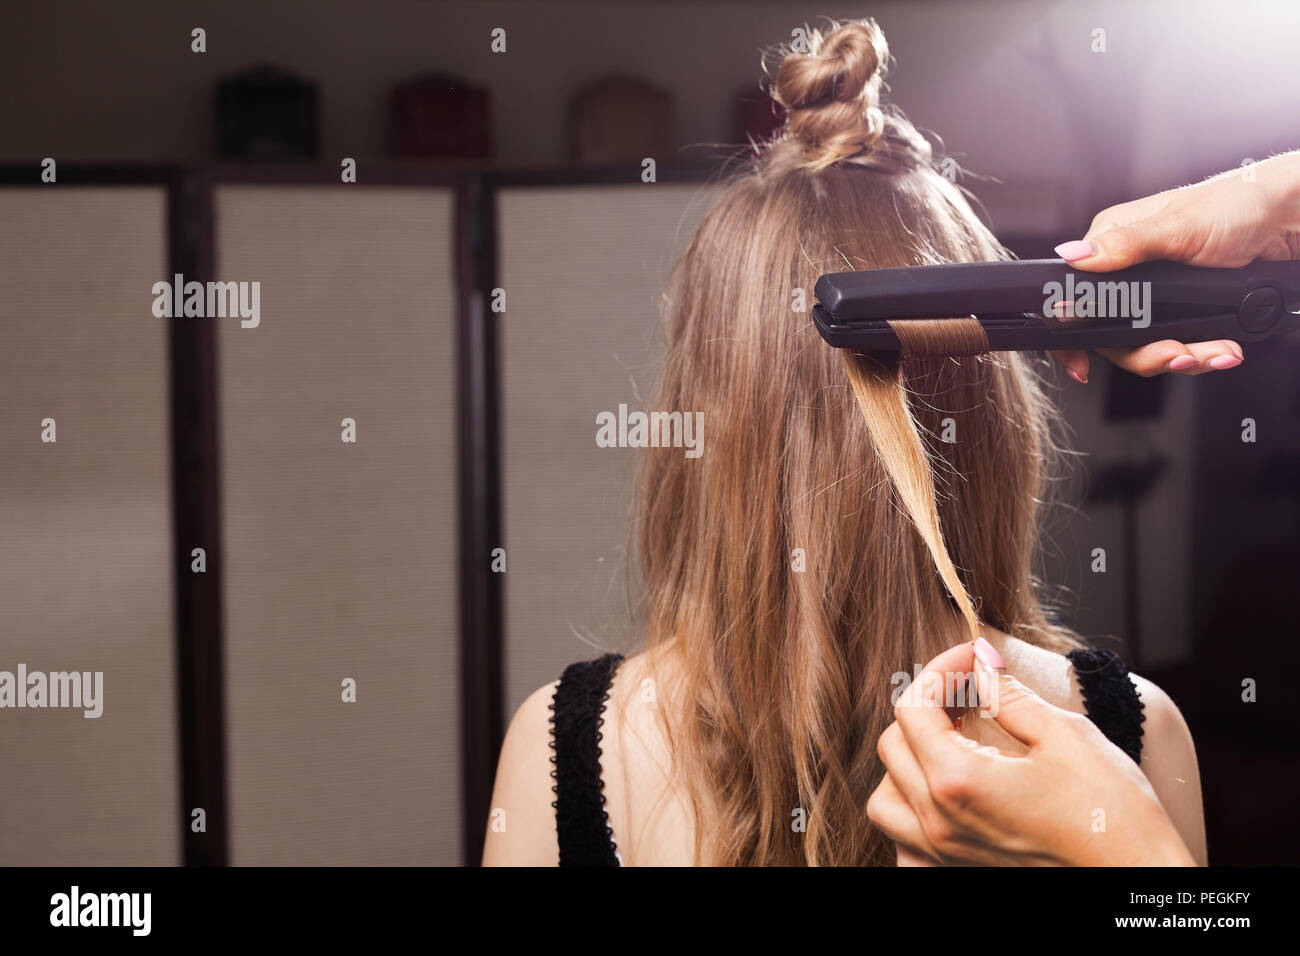 hairdresser curling a hair strand of a model - Stock Image